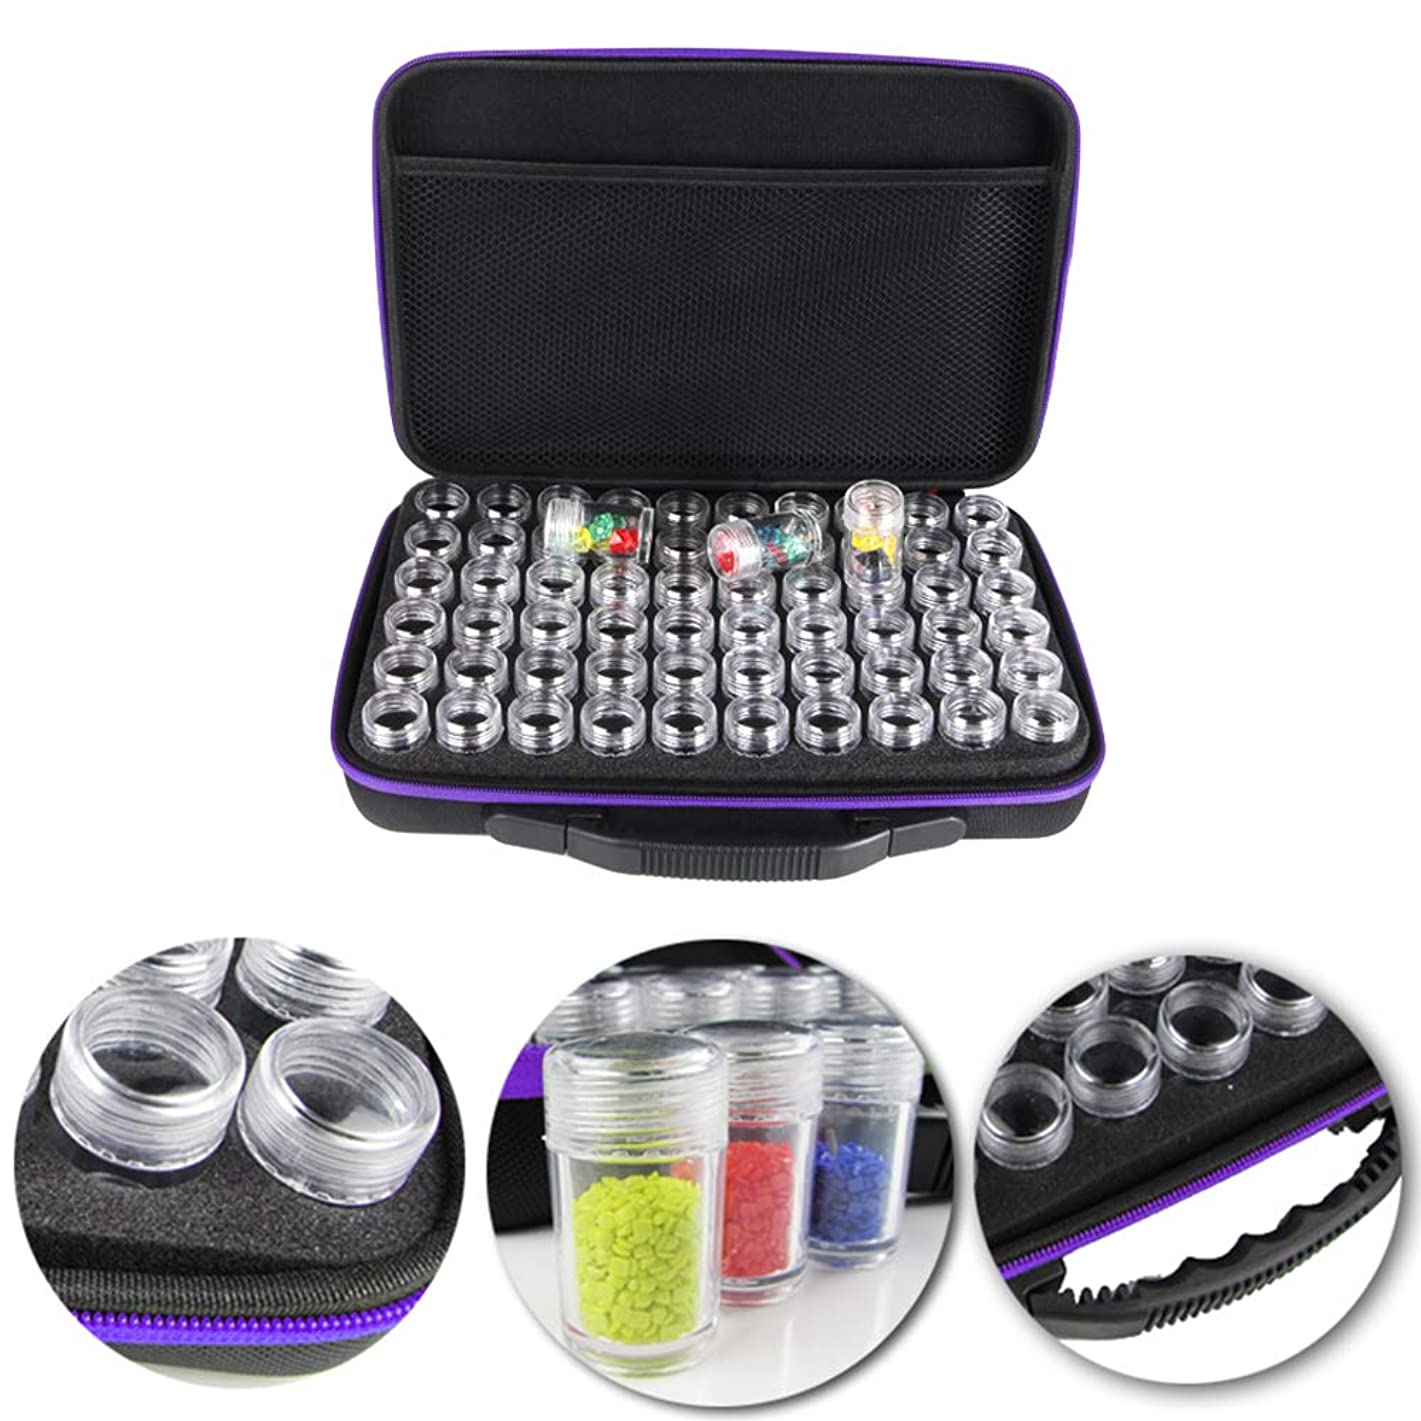 Wending Diamond Painting Storage Case Tool Diamond Painting Beads Organizer Accessories 60 Grids Shockproof and Durable High Capacity (Purple)